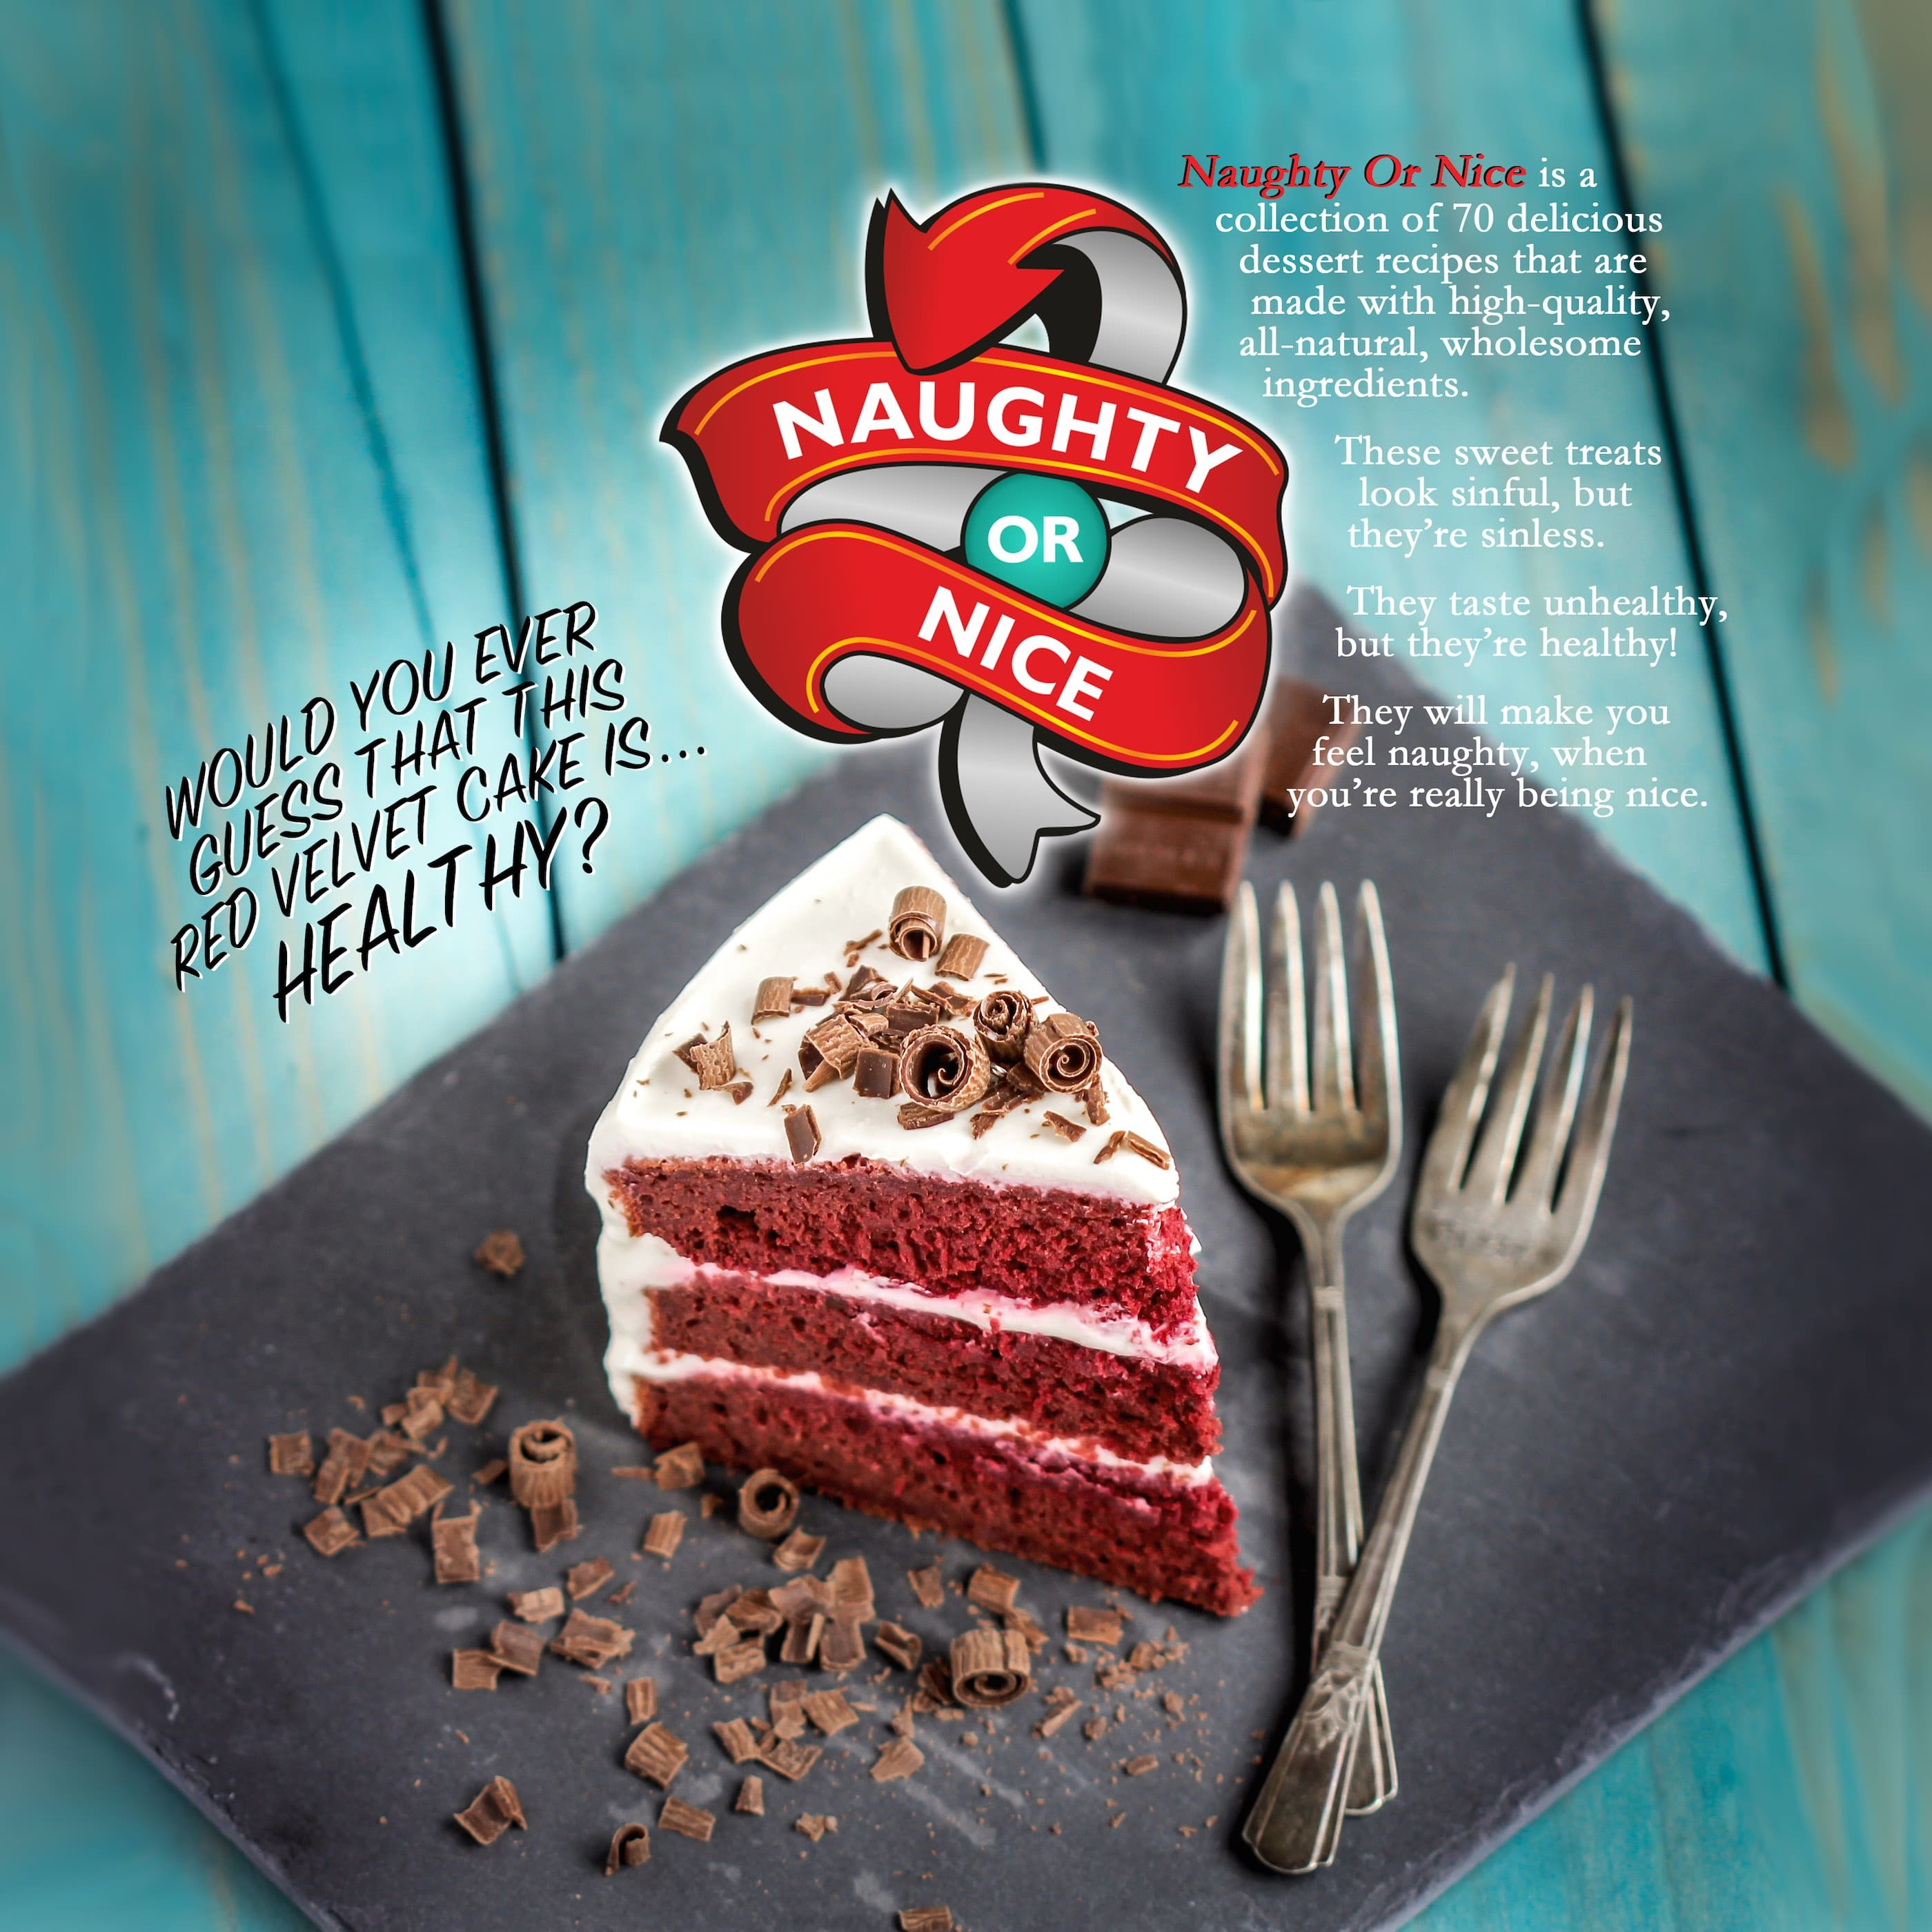 Naughty or Nice Cookbook: The ULTIMATE Healthy Dessert Cookbook – Jessica Stier of Desserts with Benefits